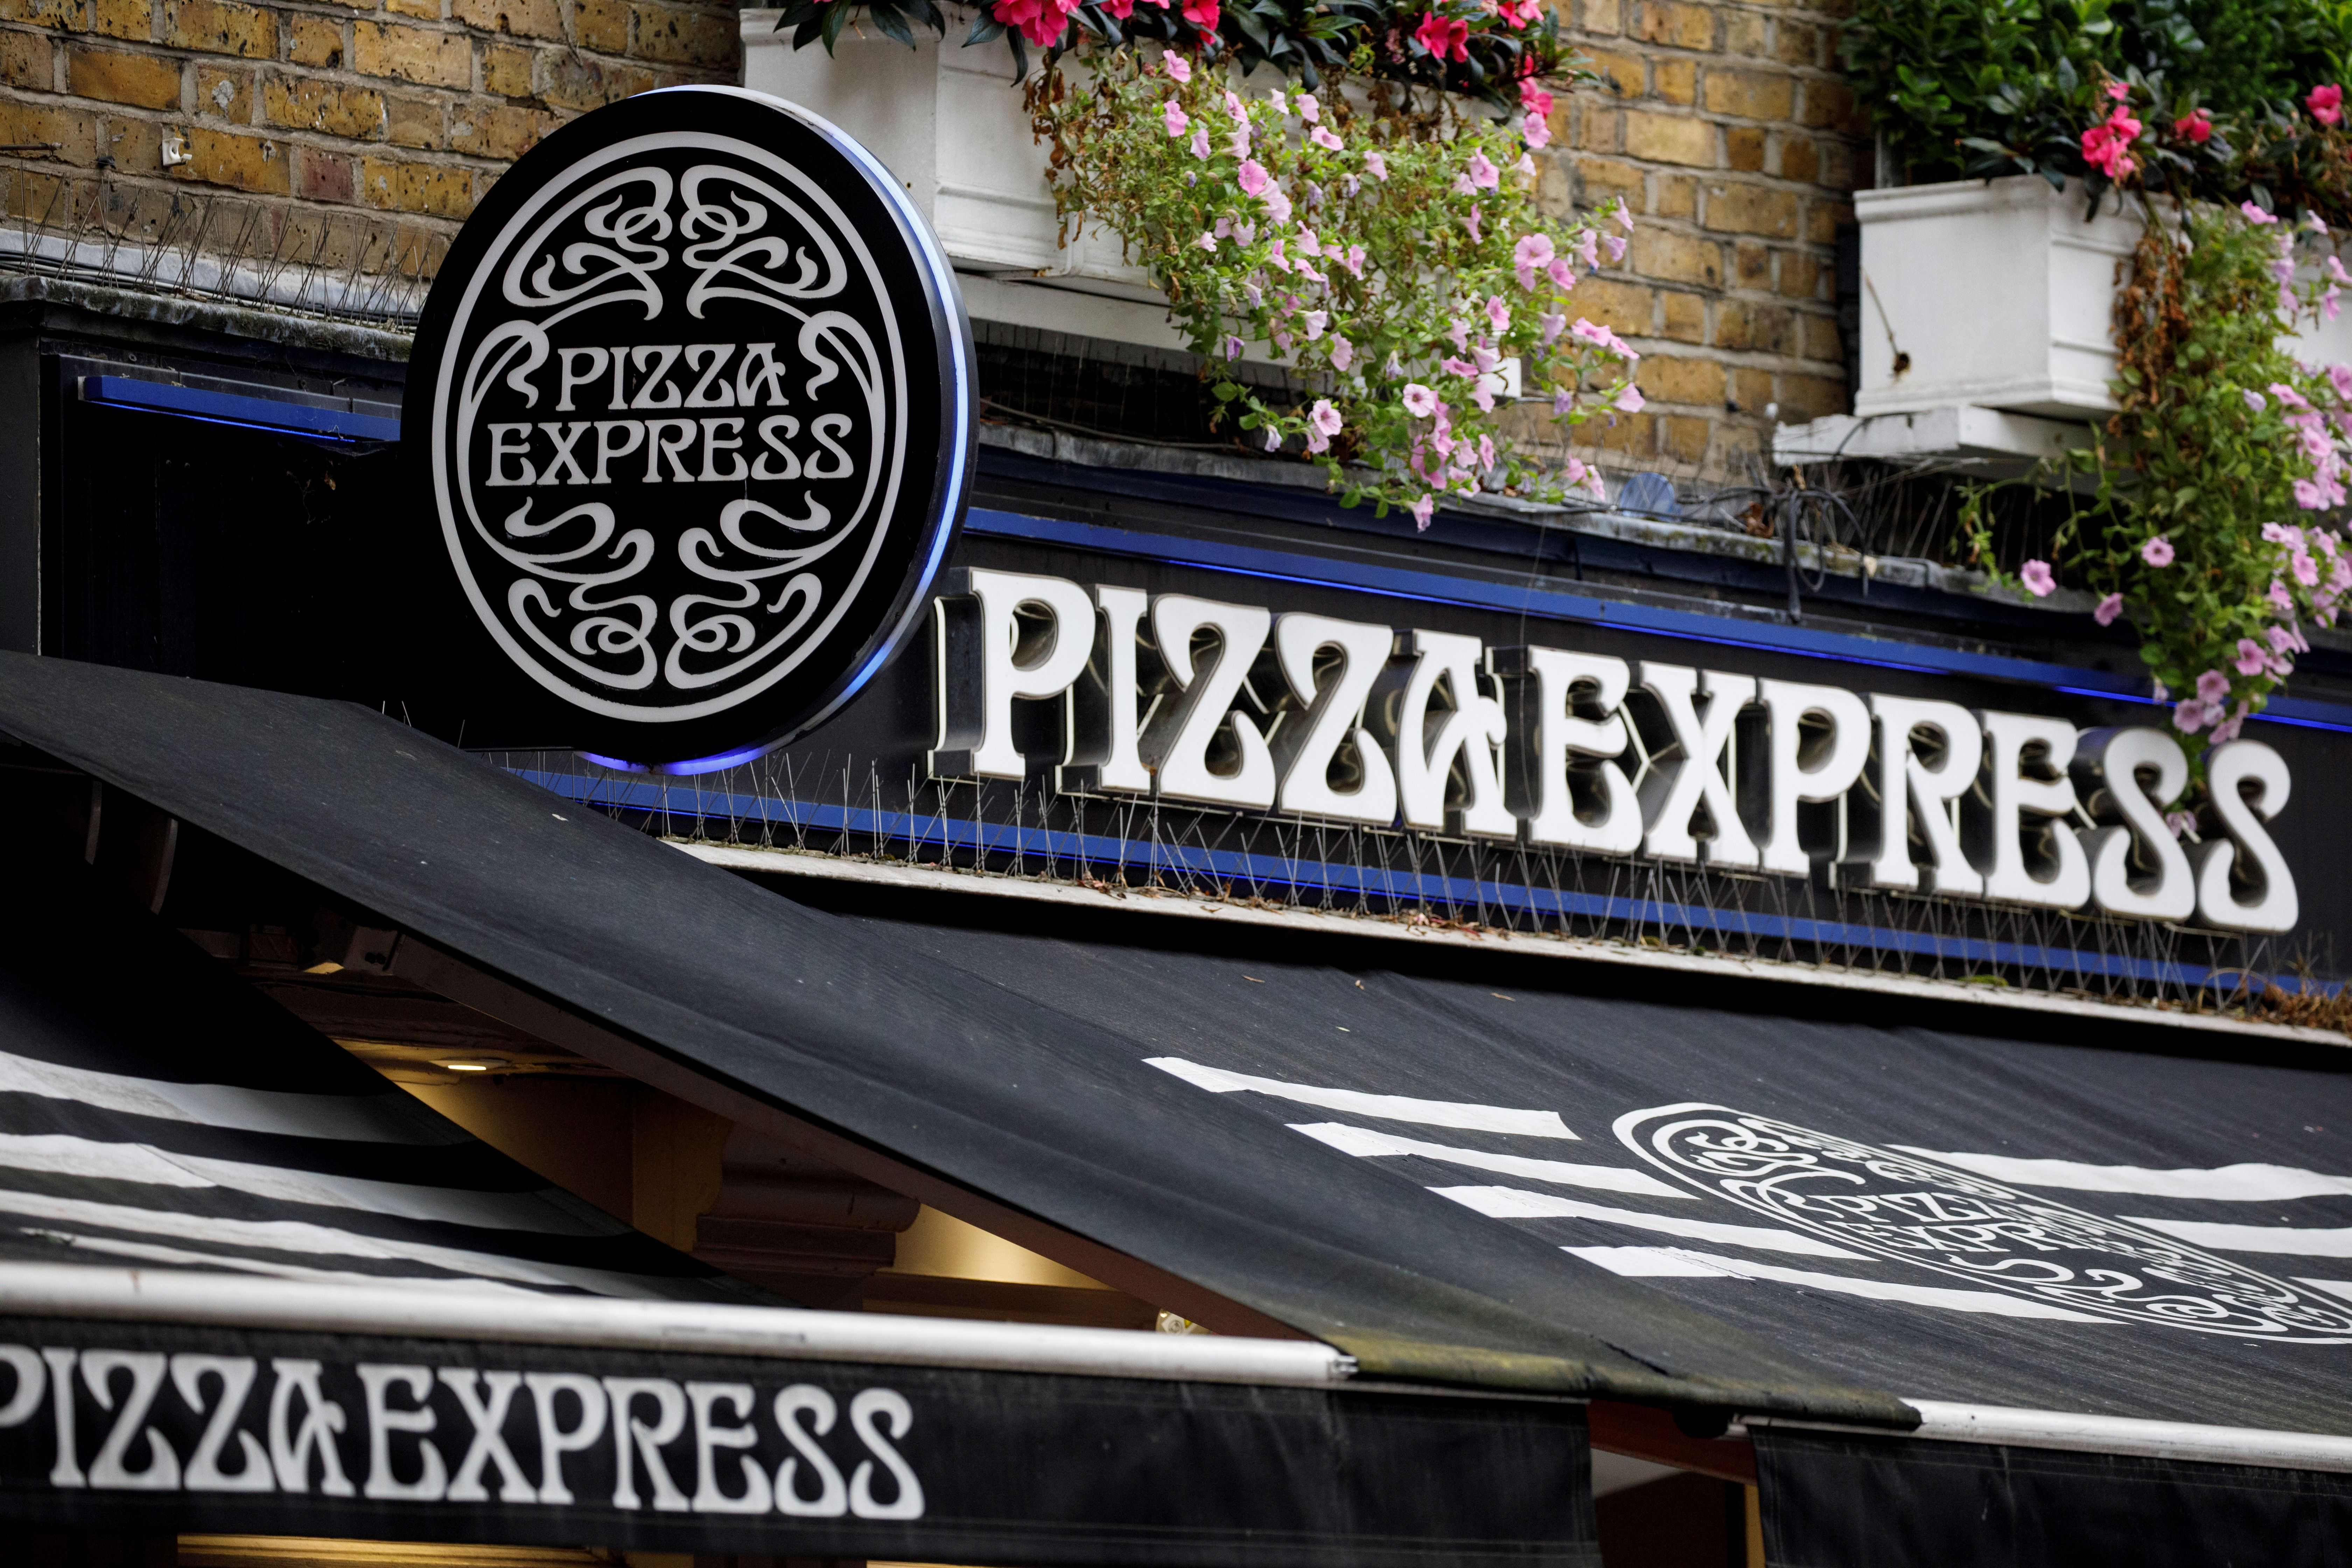 Pizza Express takes debt off menu with cash injection